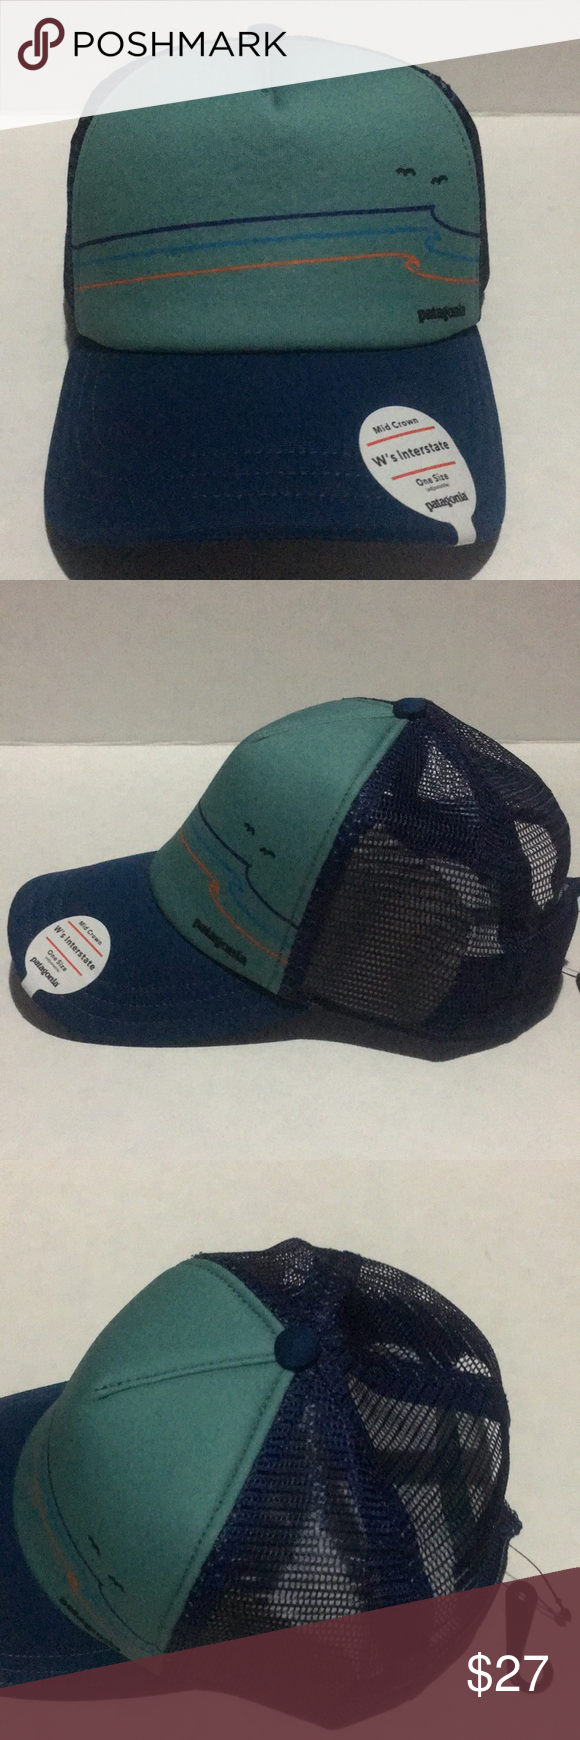 211531009eddf Patagonia Tide Ride Sur Blue Trucker Hat New with Tags, Patagonia ...